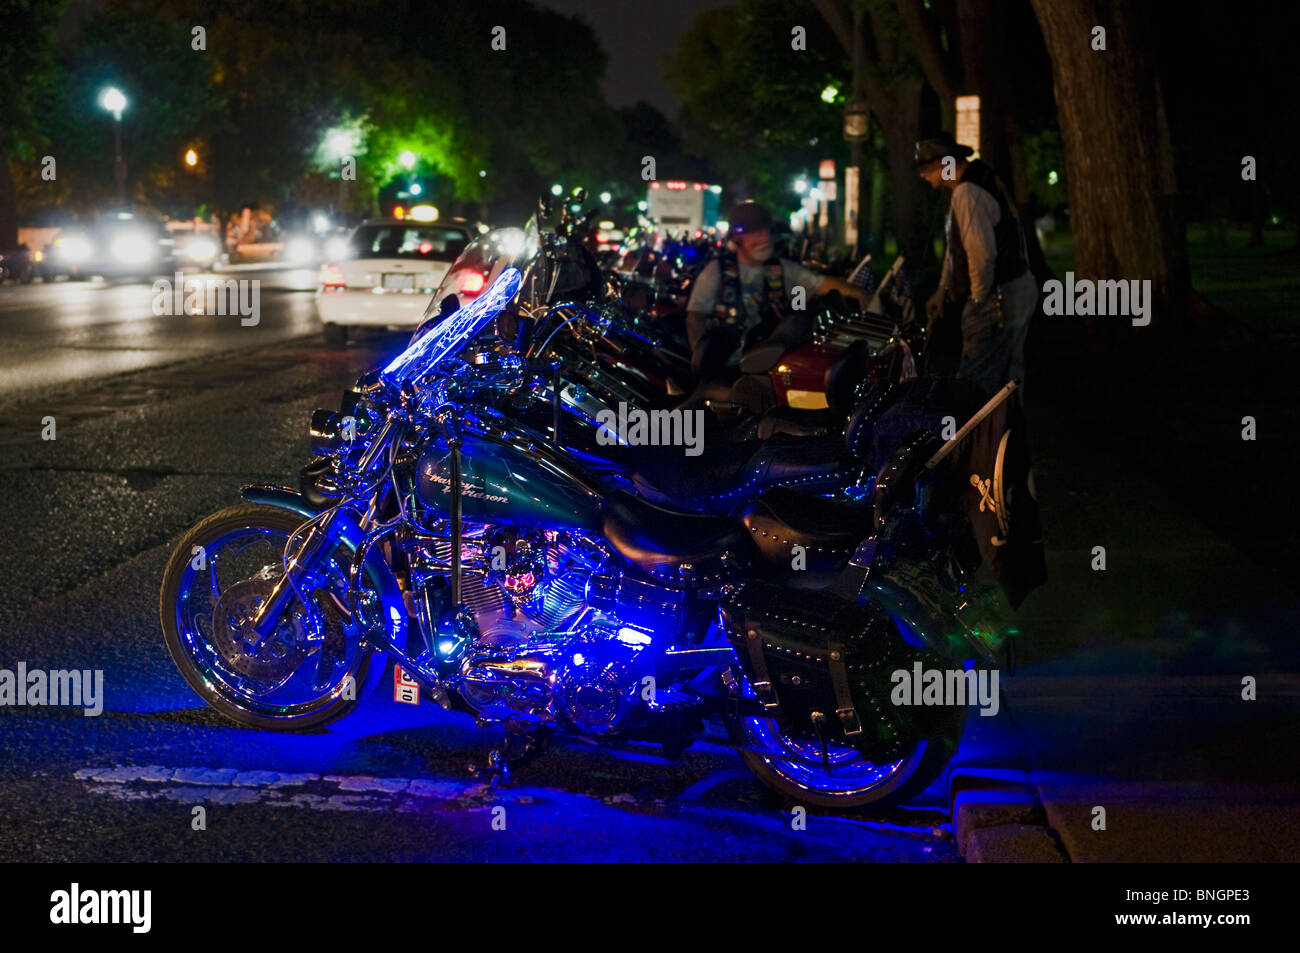 A modified Harley Davidson Motorcycle with lights at night. - Stock Image